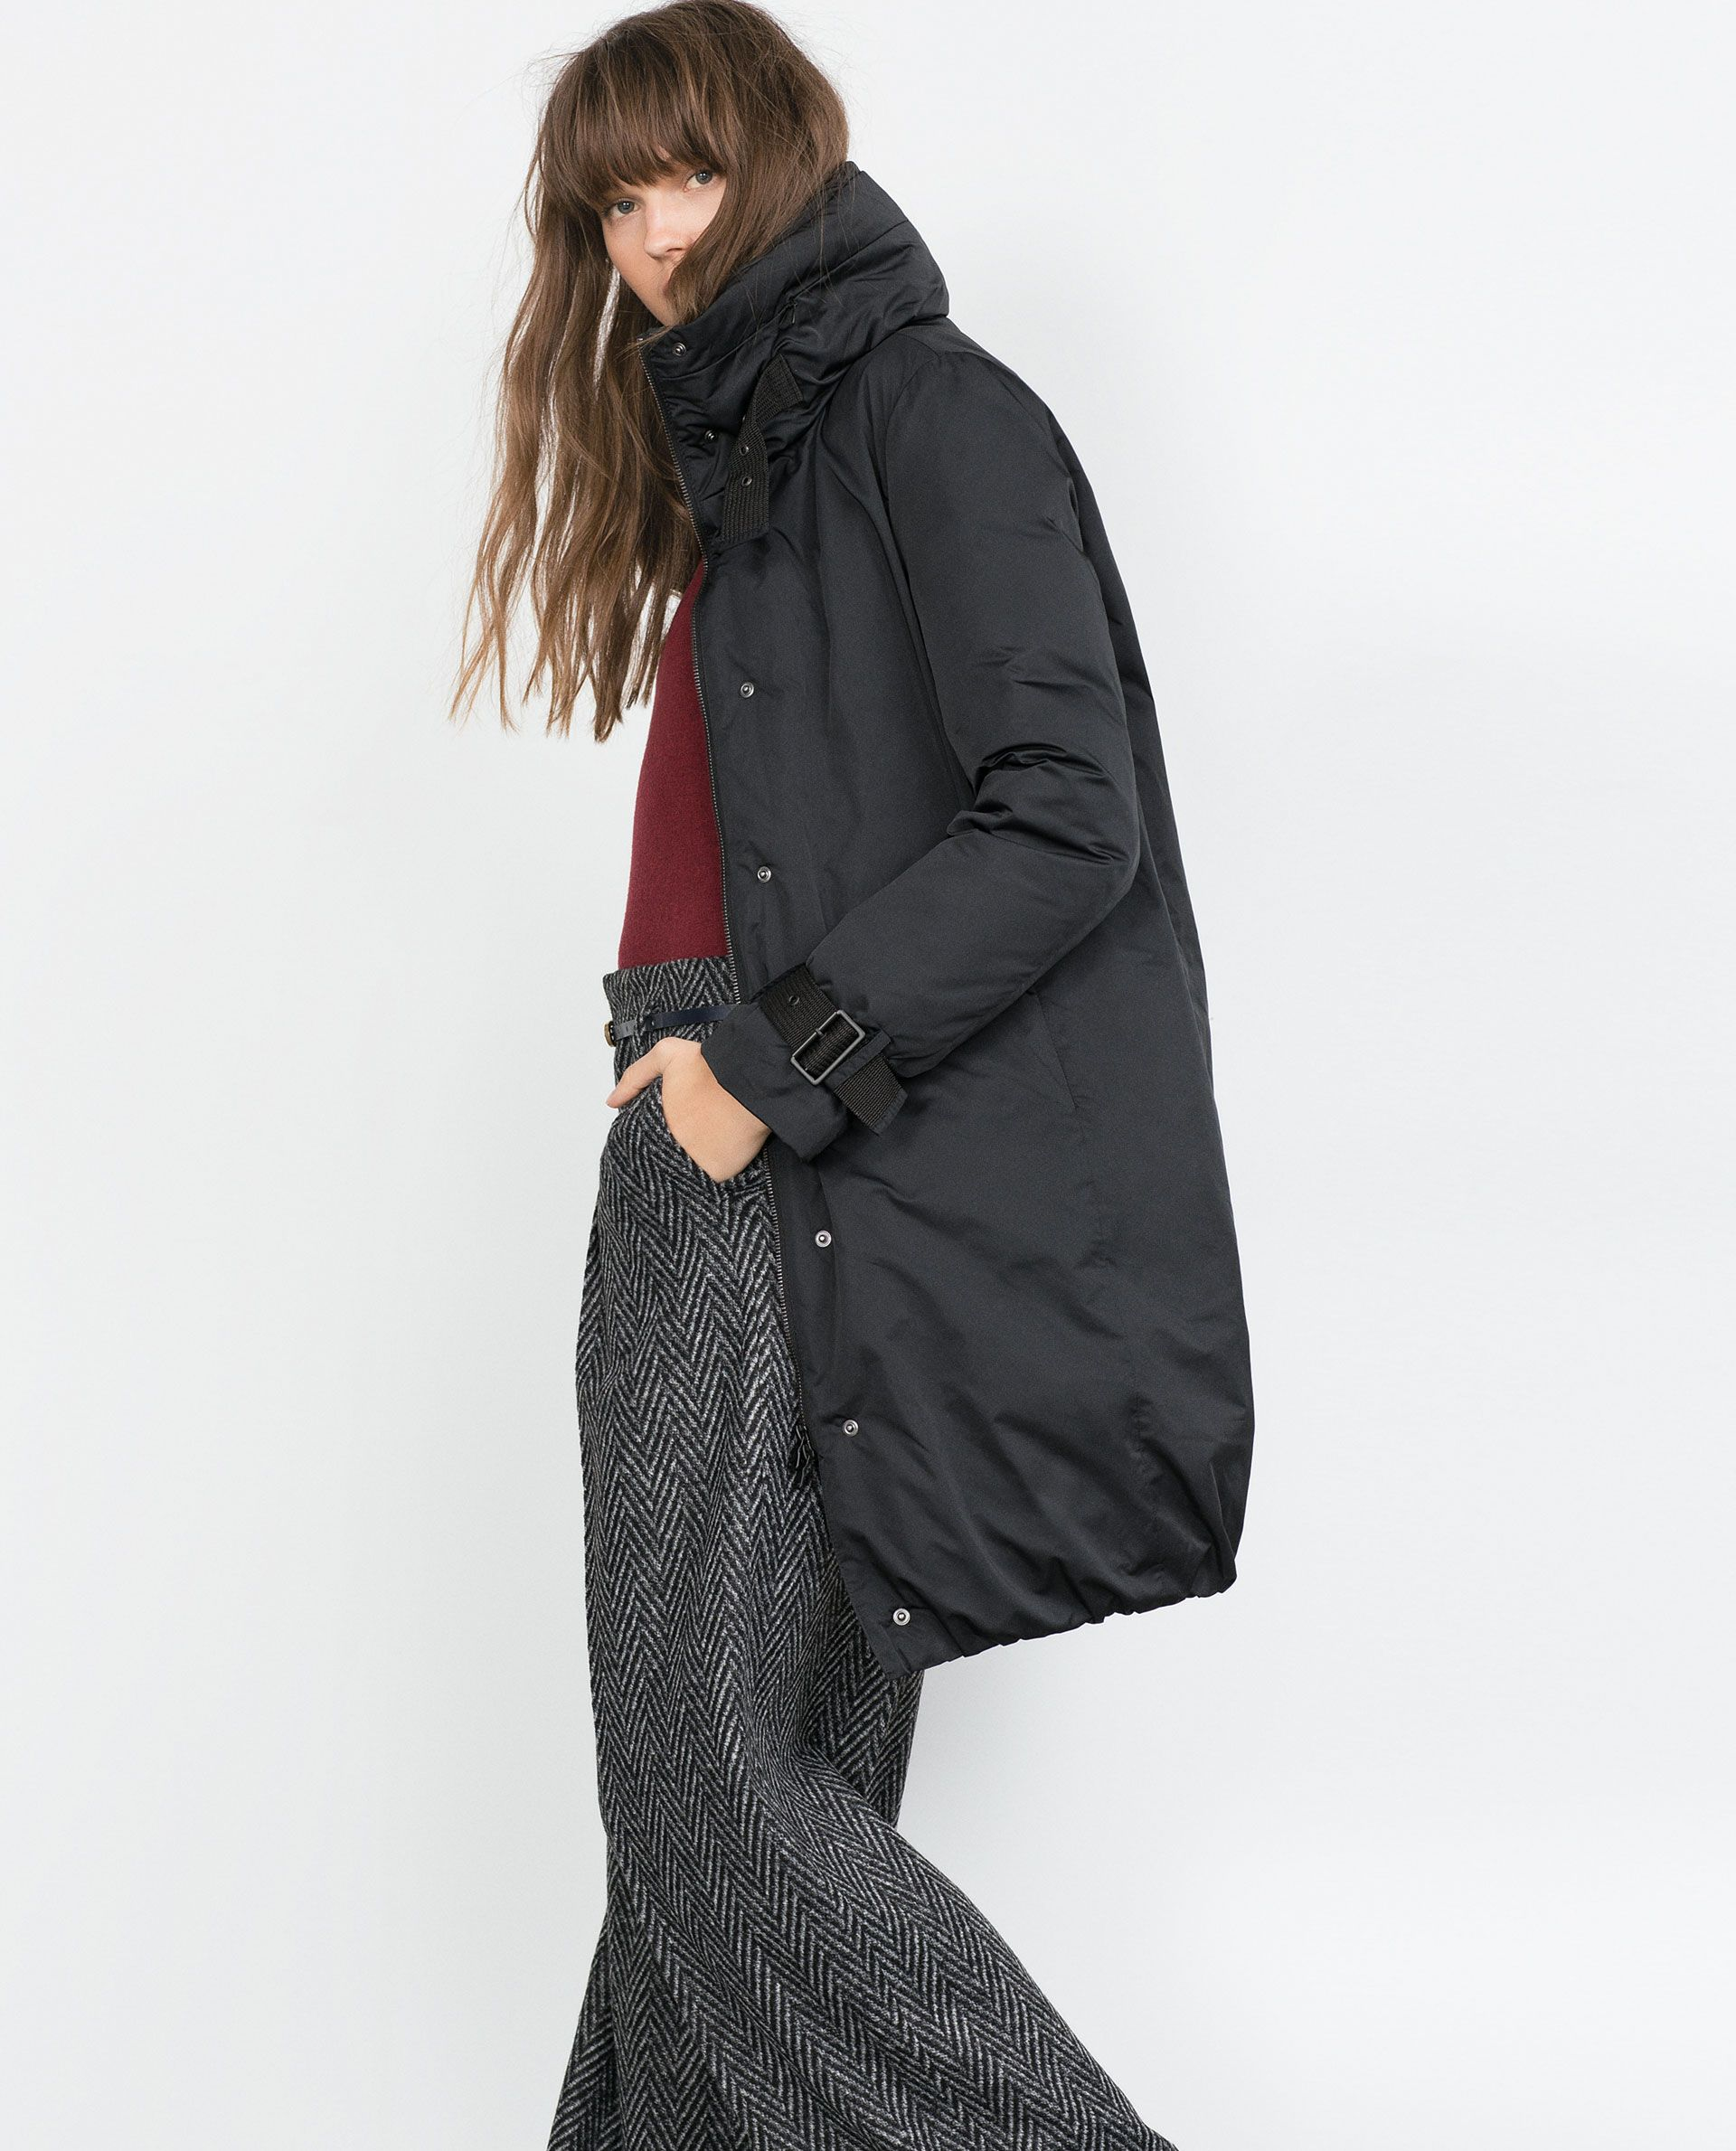 LONG DOWN JACKET - Quilted Coats - Outerwear - WOMAN | ZARA ... : quilted long down coat - Adamdwight.com